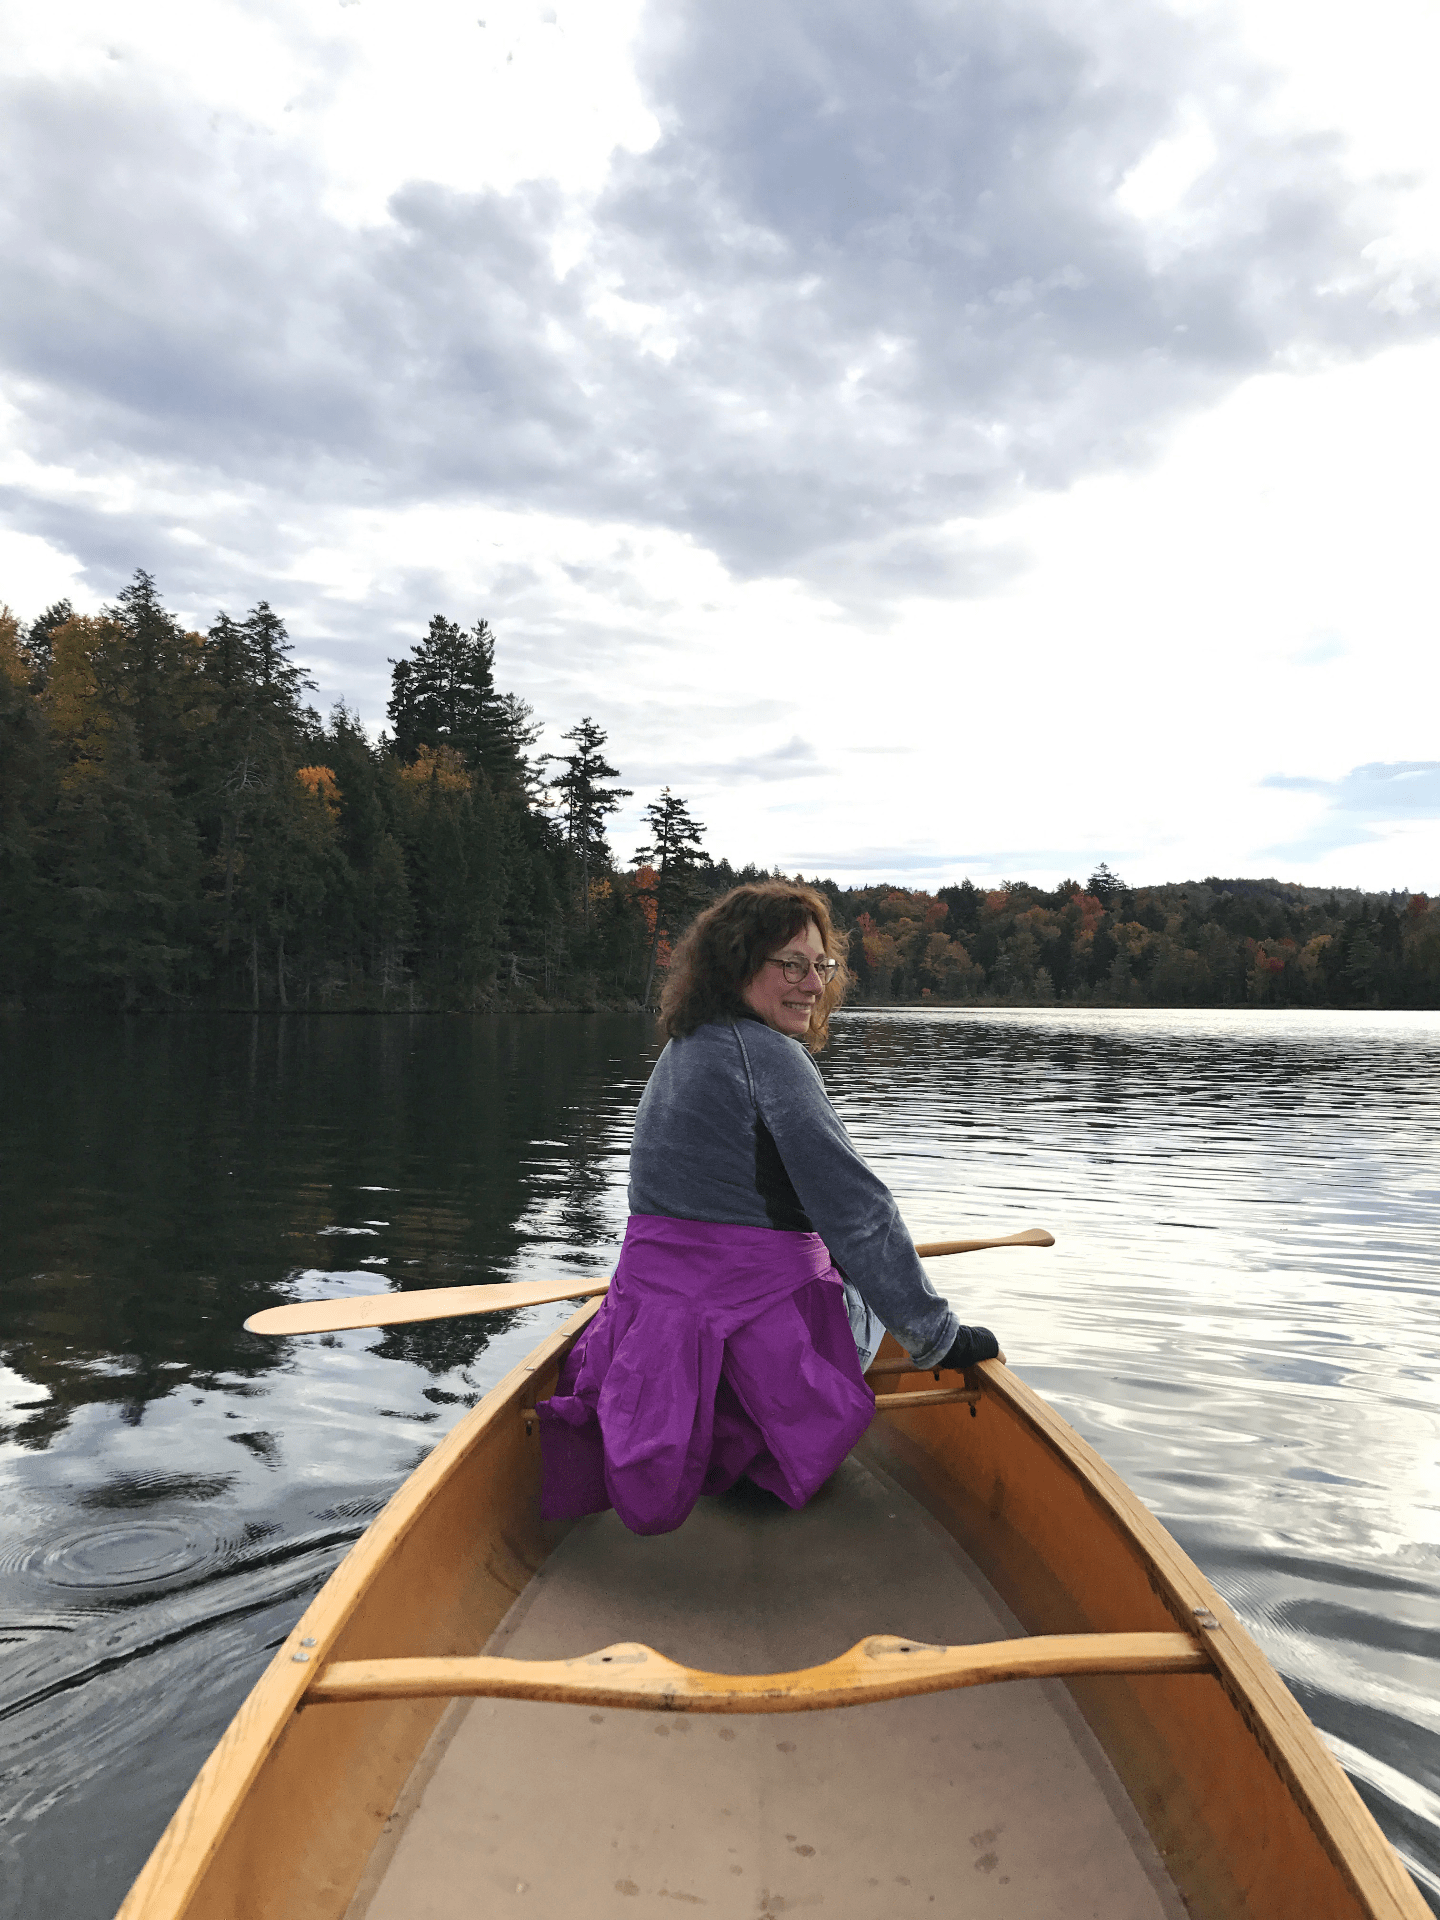 photo of Karen English in the front of a canoe on a lake in the Adirondack Mountains.